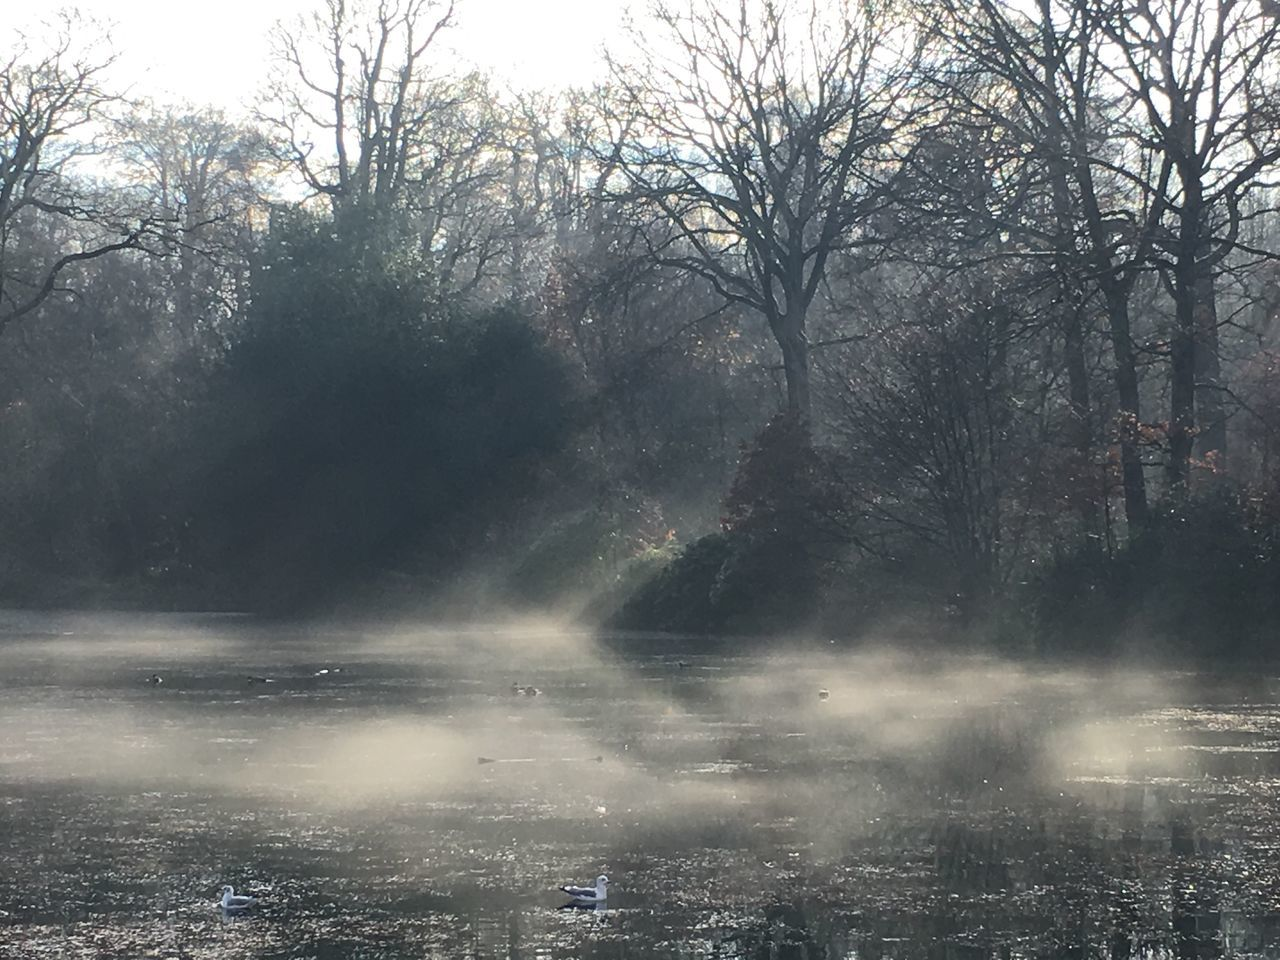 Beauty In Nature Day Fog Hampstead Heath MIS Nature No People Outdoors Scenics Sky Tree Water